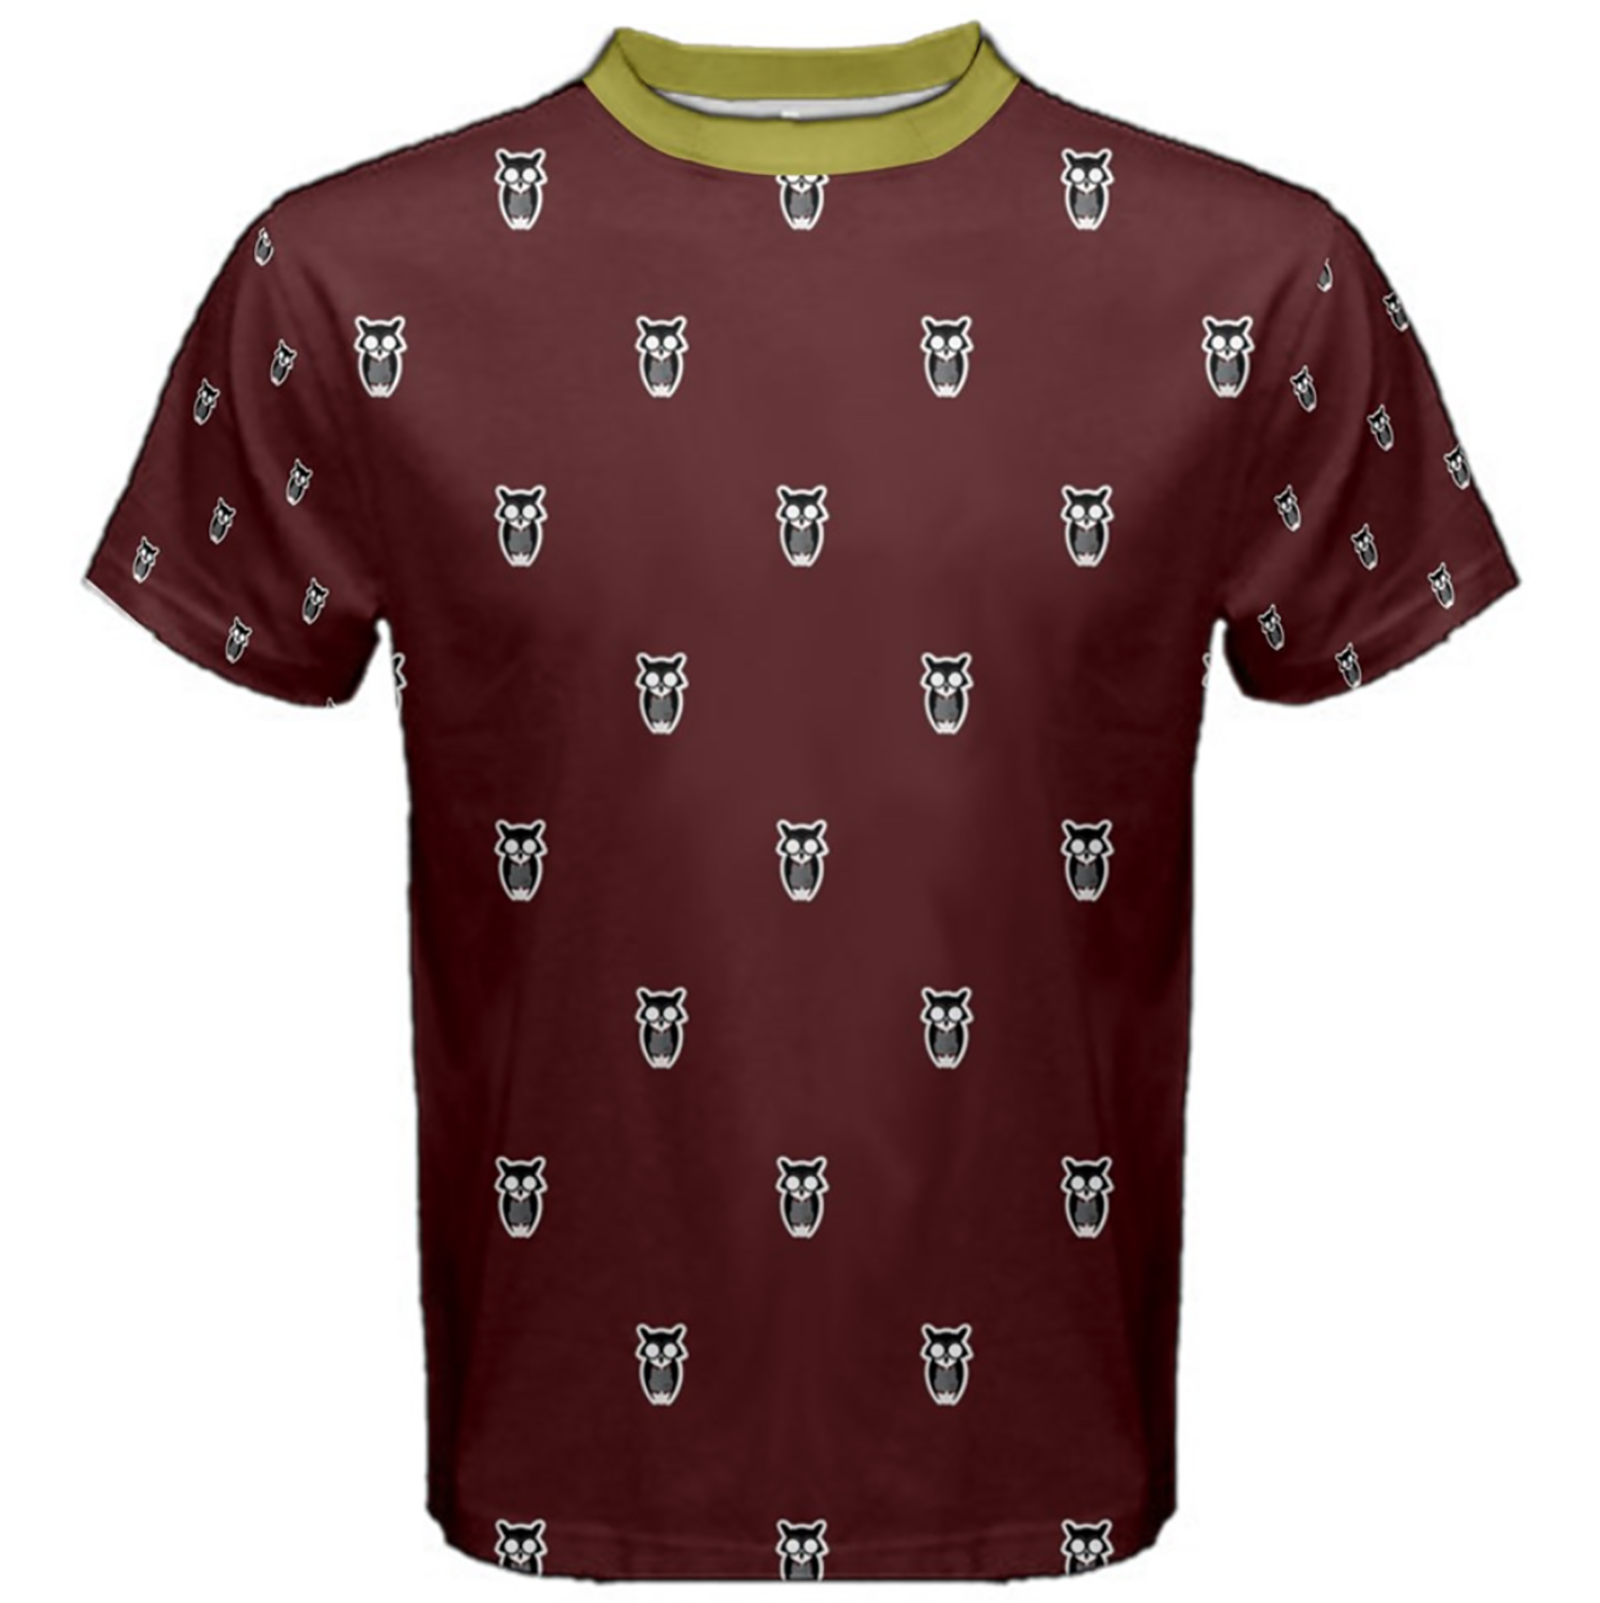 Owl Patterned (Unisex) Cotton Tee - Inspired by Gryffindor House